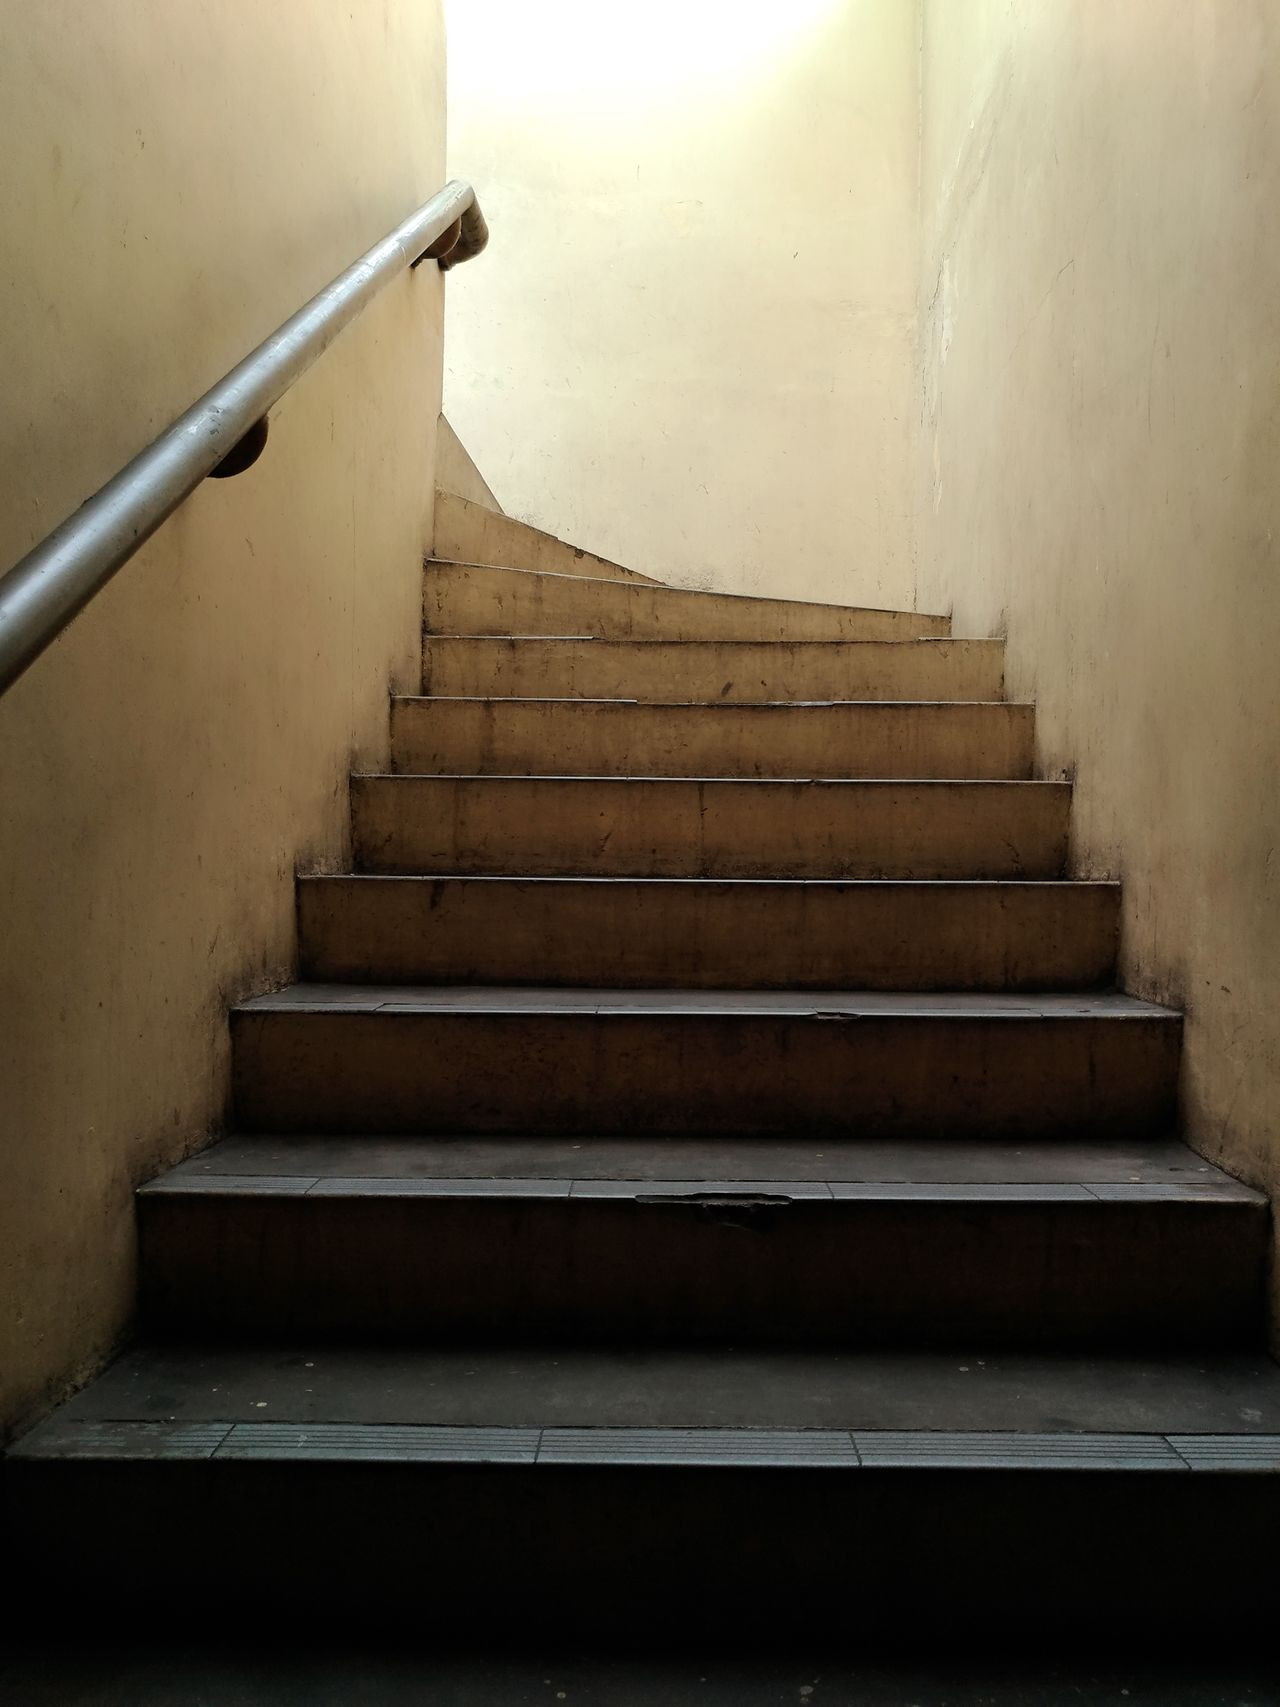 Staircase Steps Steps And Staircases No People Indoors  Day